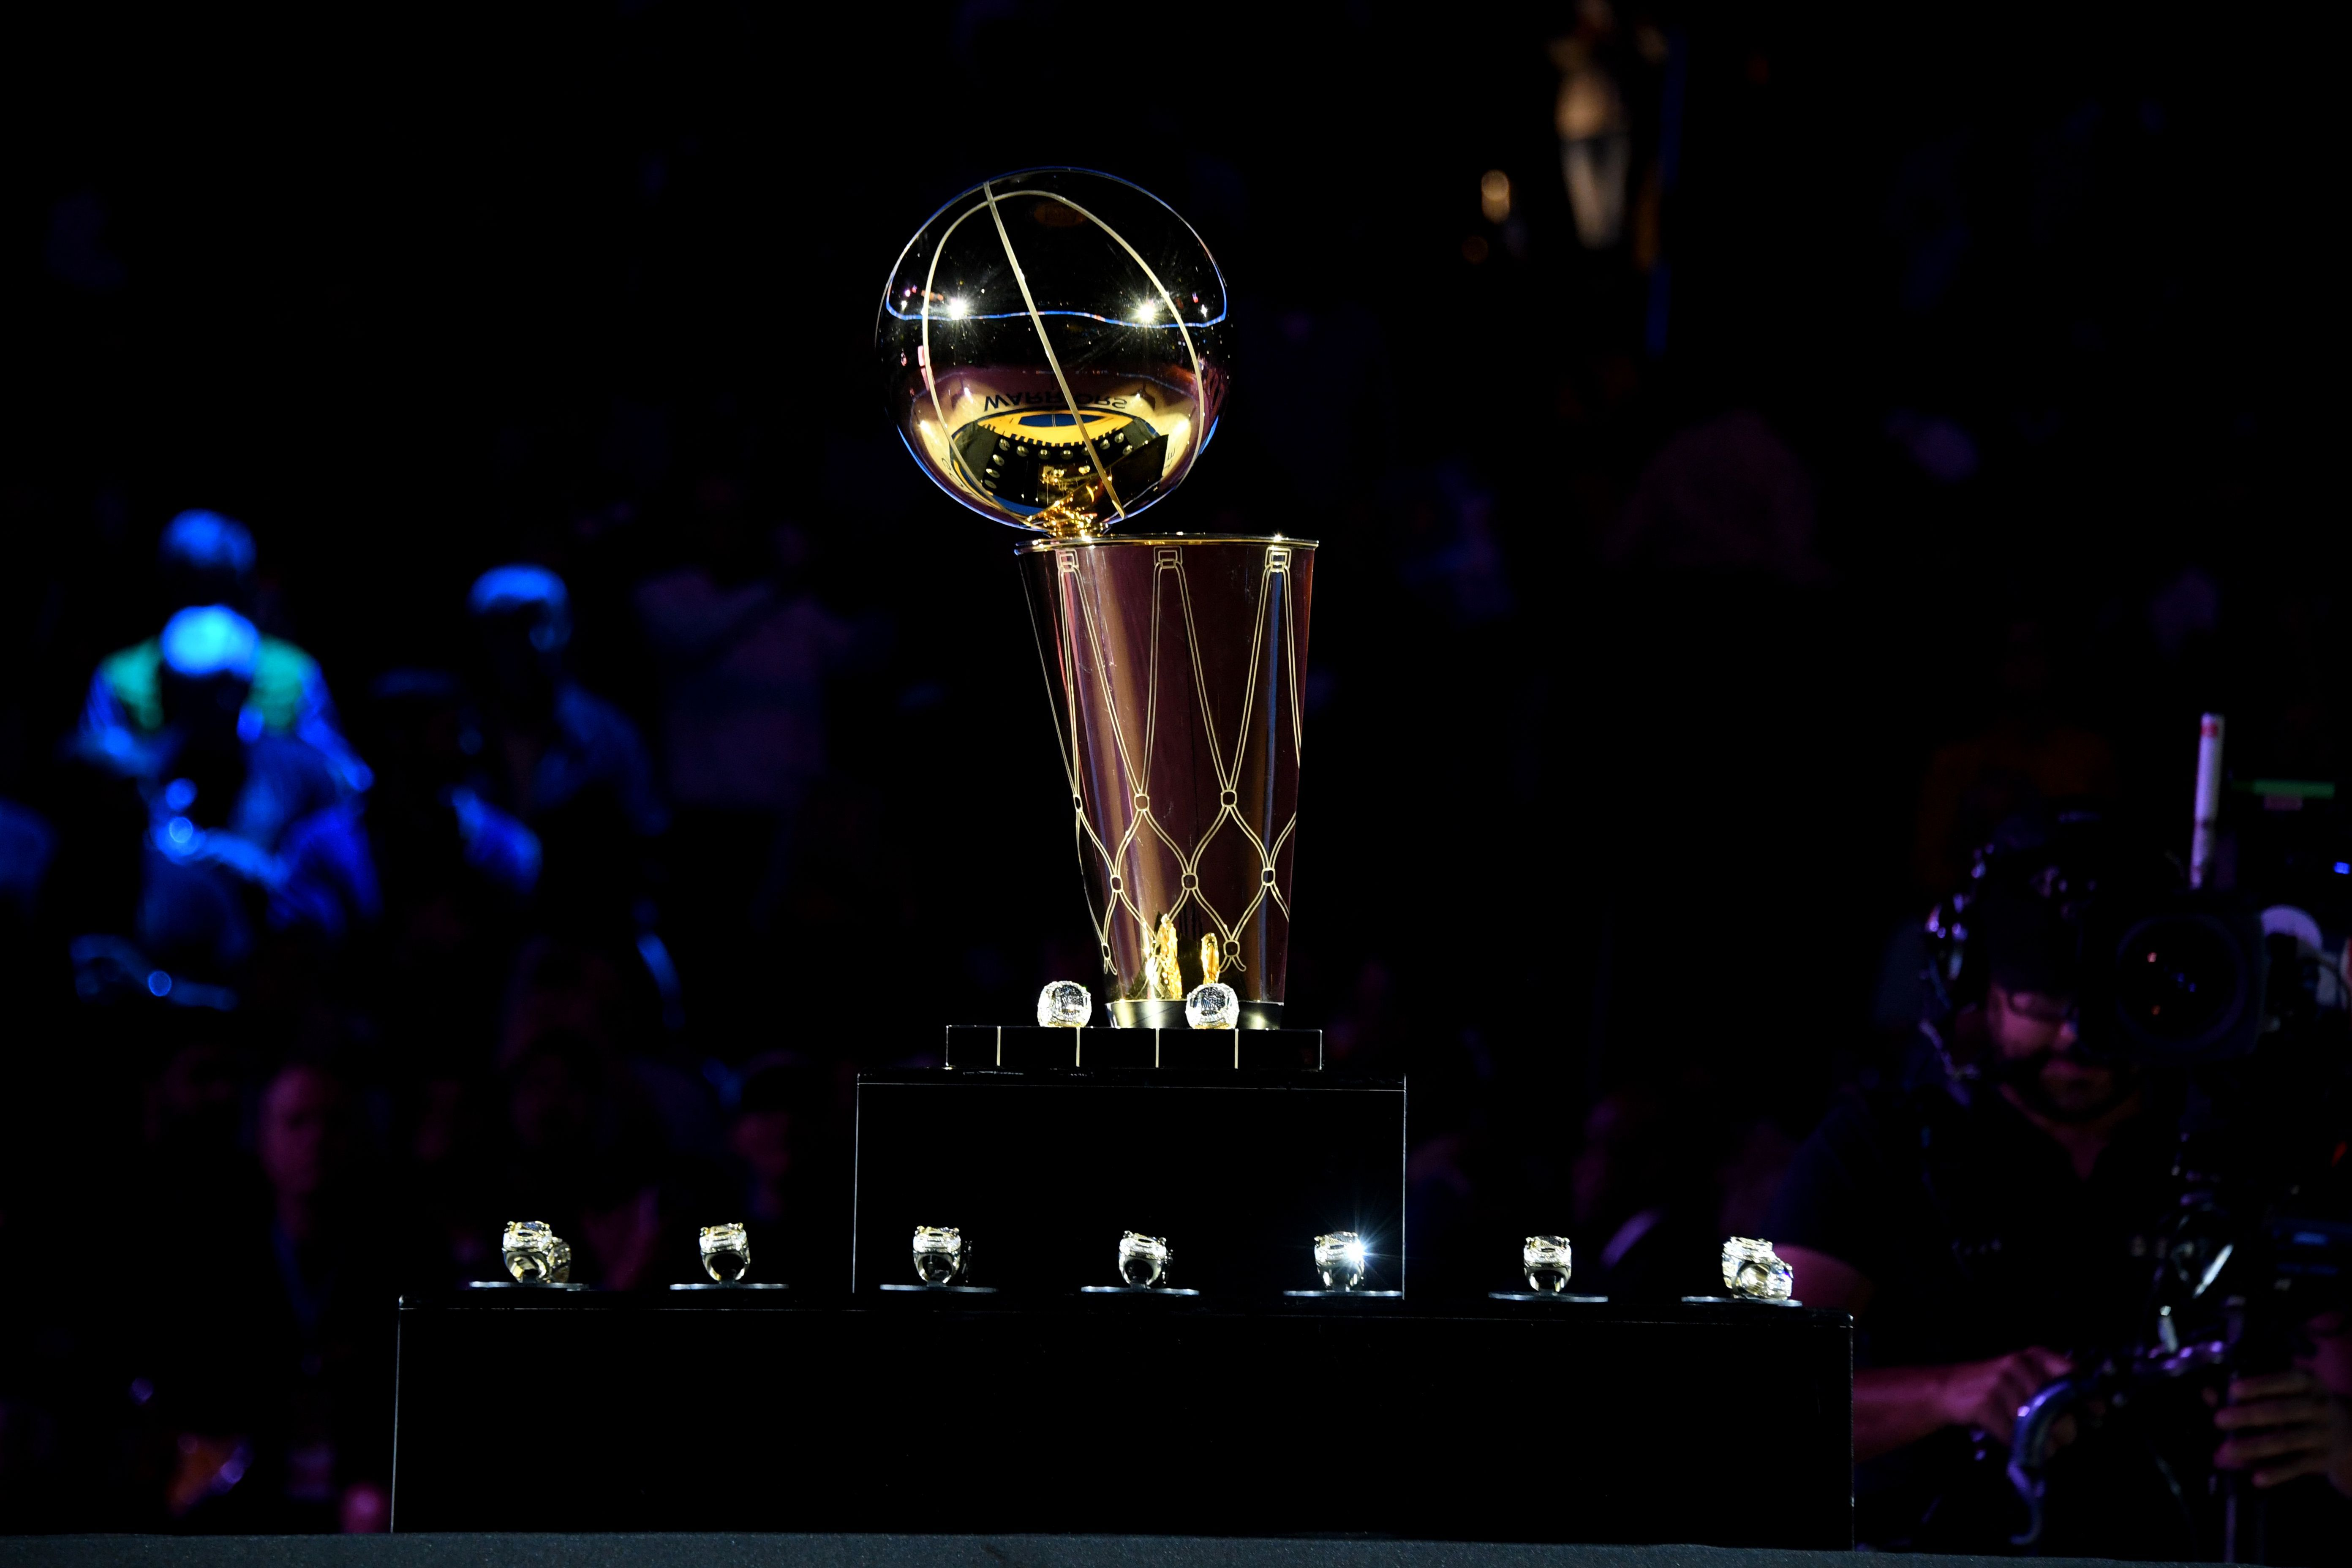 How to Live Stream the NBA Finals Nba finals game, Nba